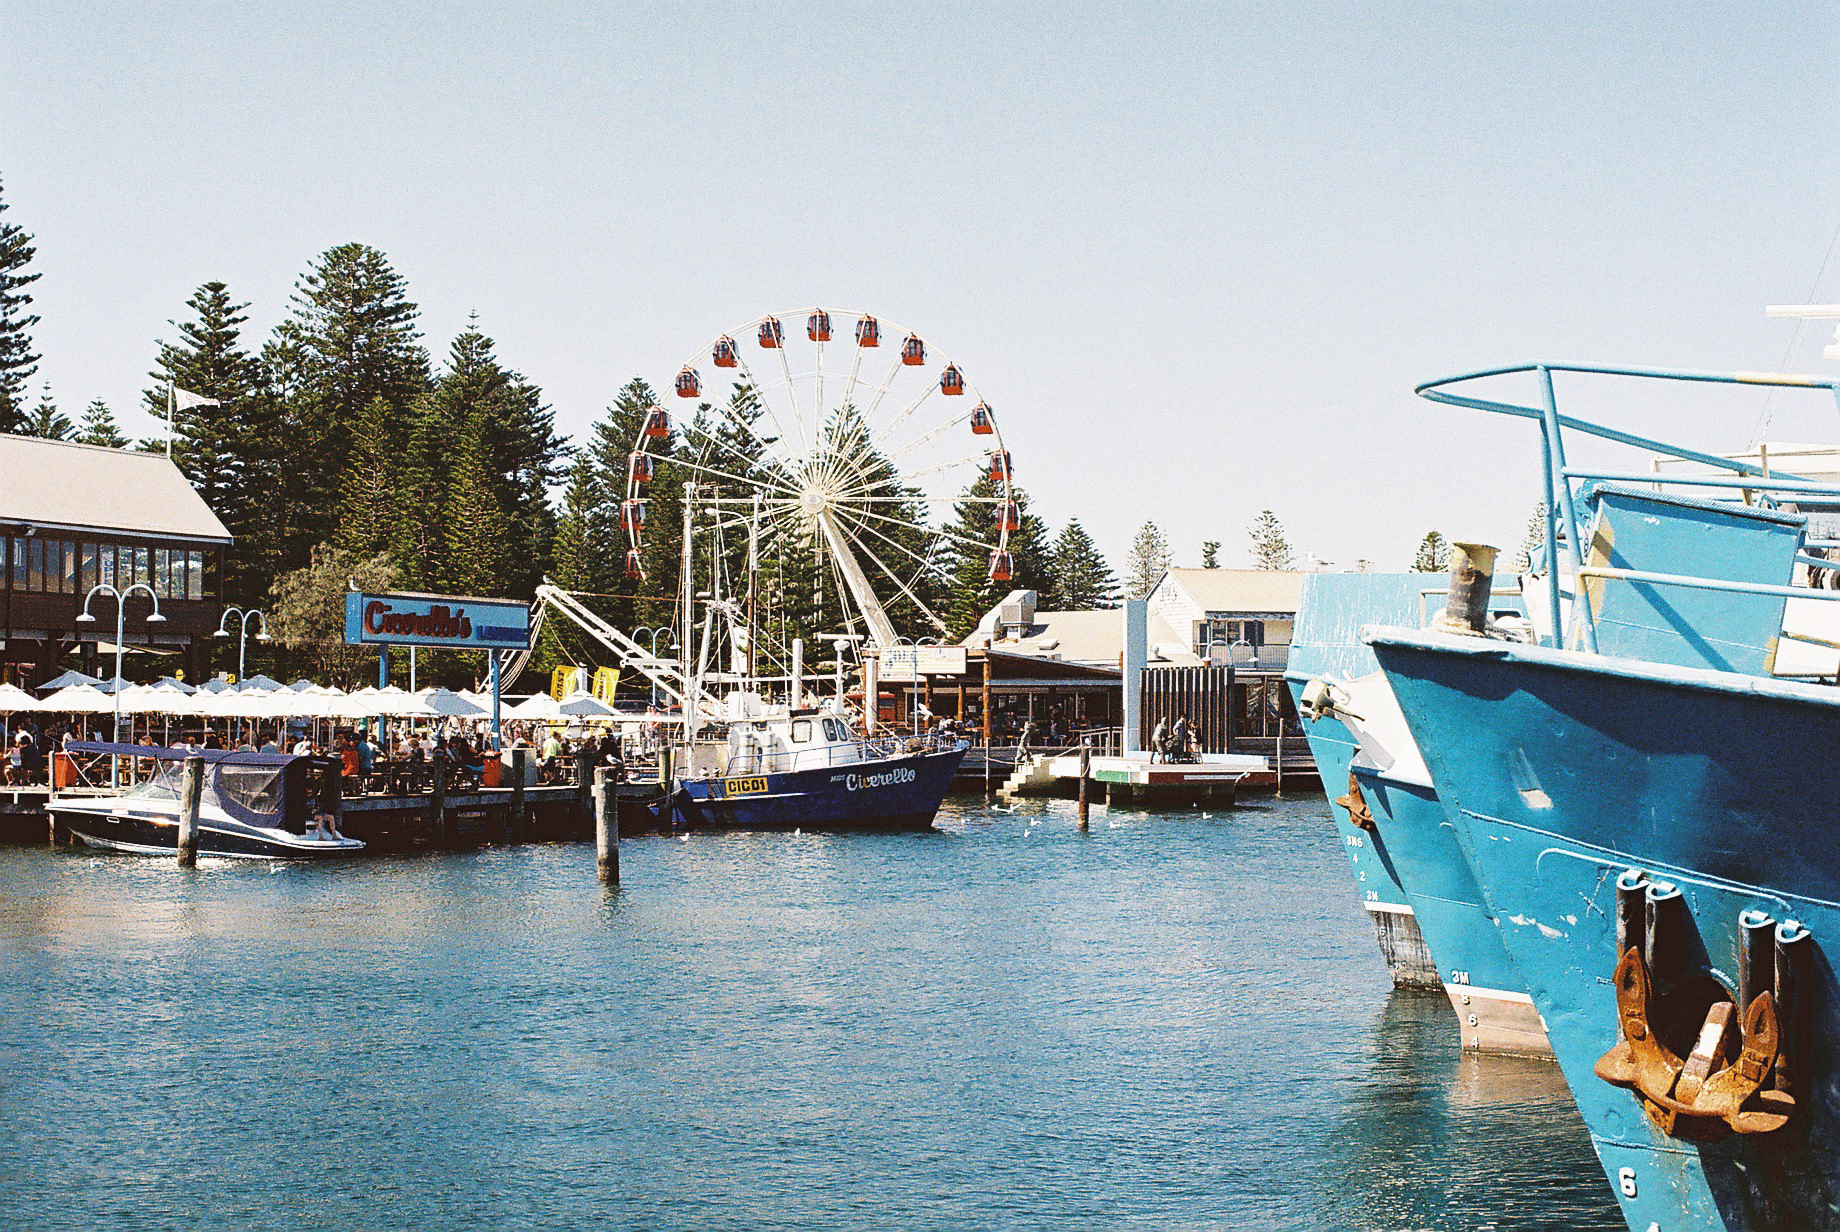 fremantle_port_jetty_ciccerellos.JPG